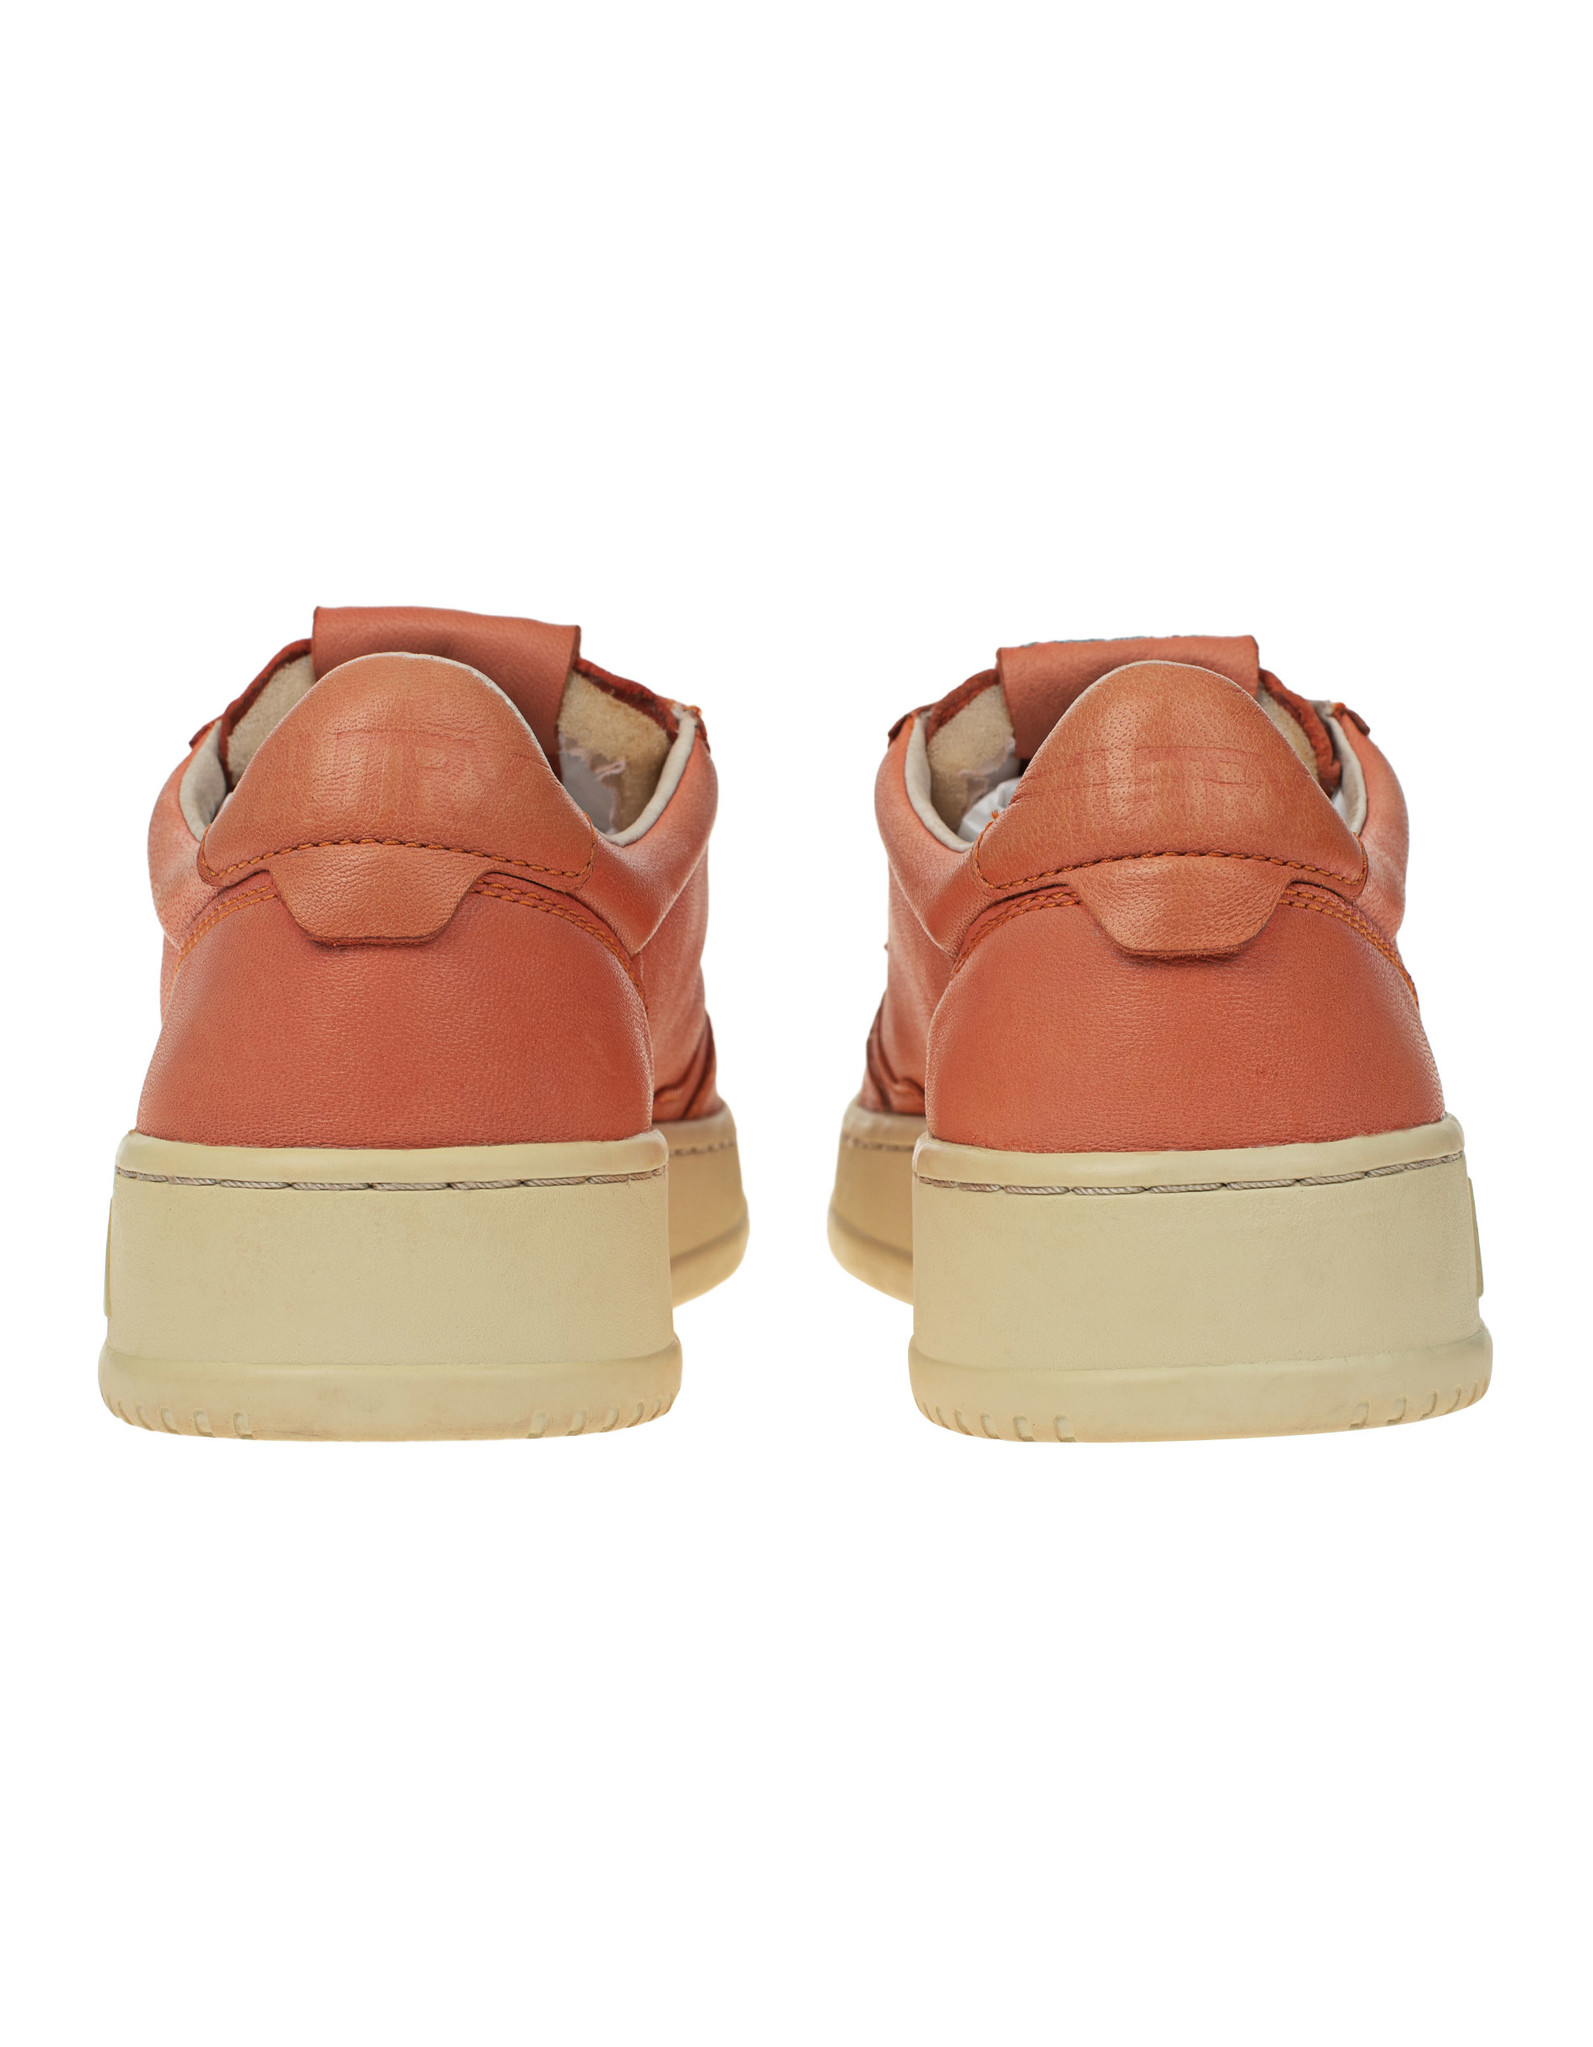 Medalist 01 Low Goat Coral Pink Women-3